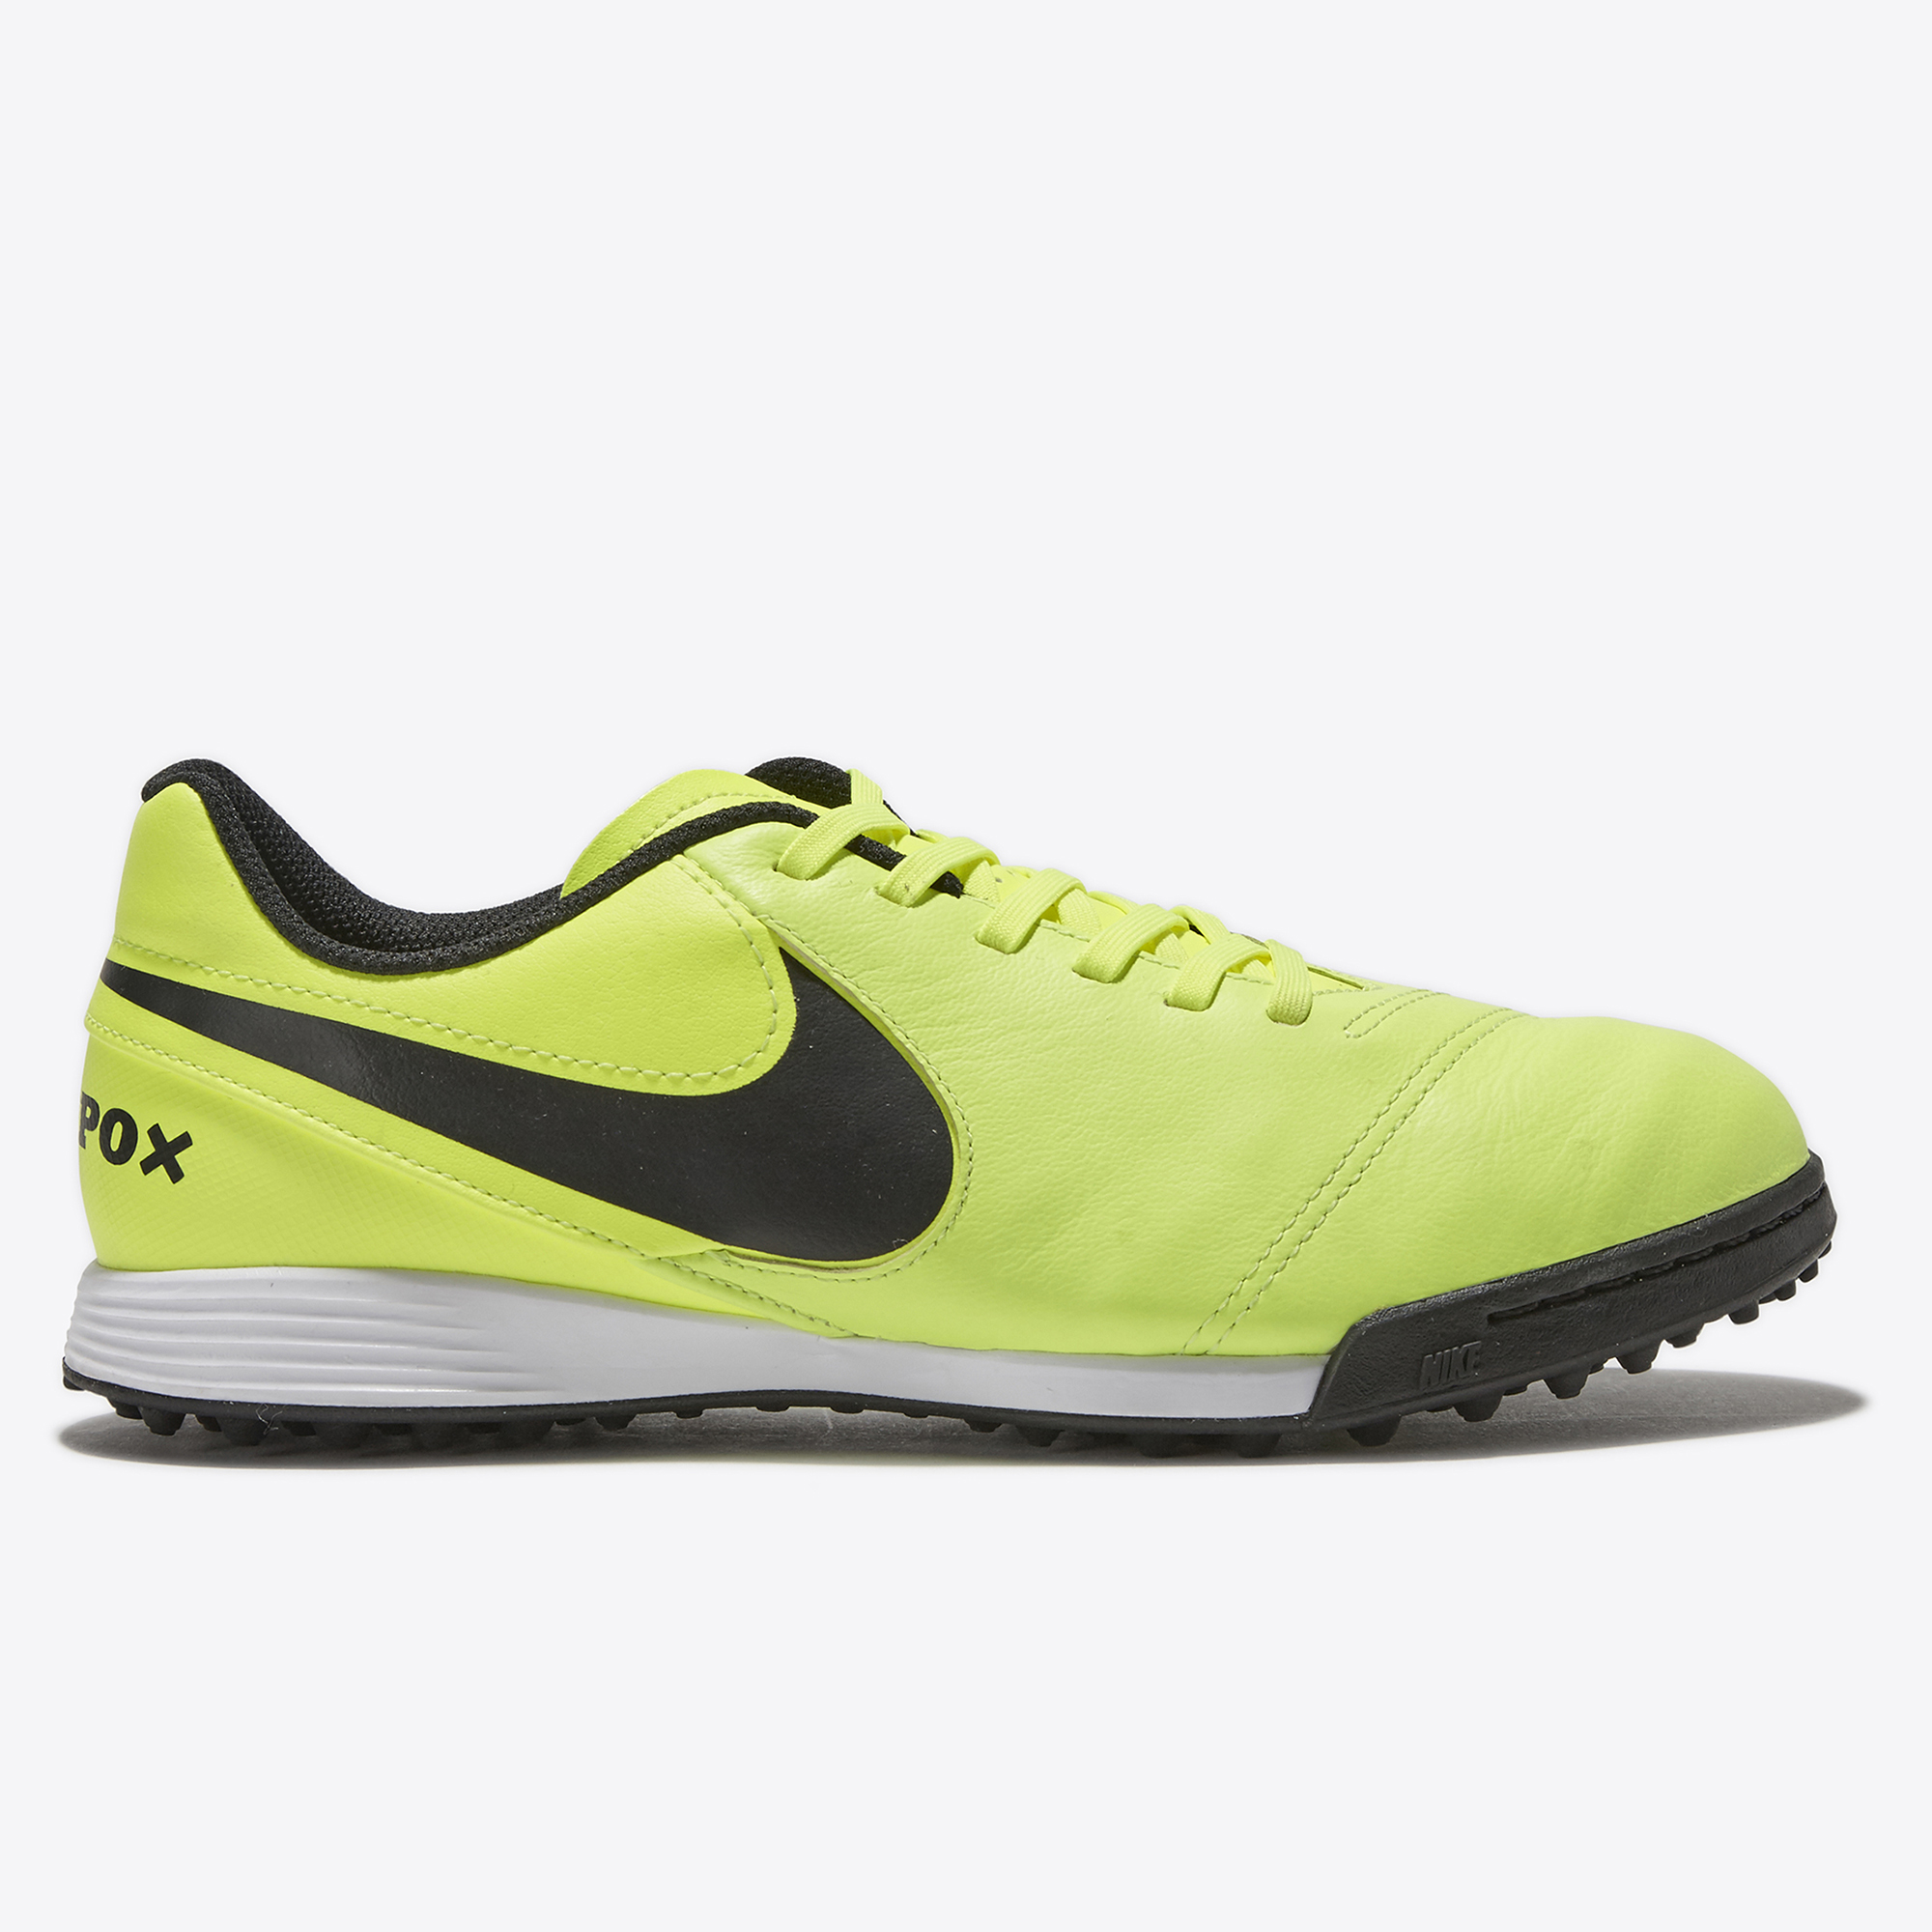 Nike Tiempo Legend VI Astroturf Trainers - Volt/Black/Volt - Kids